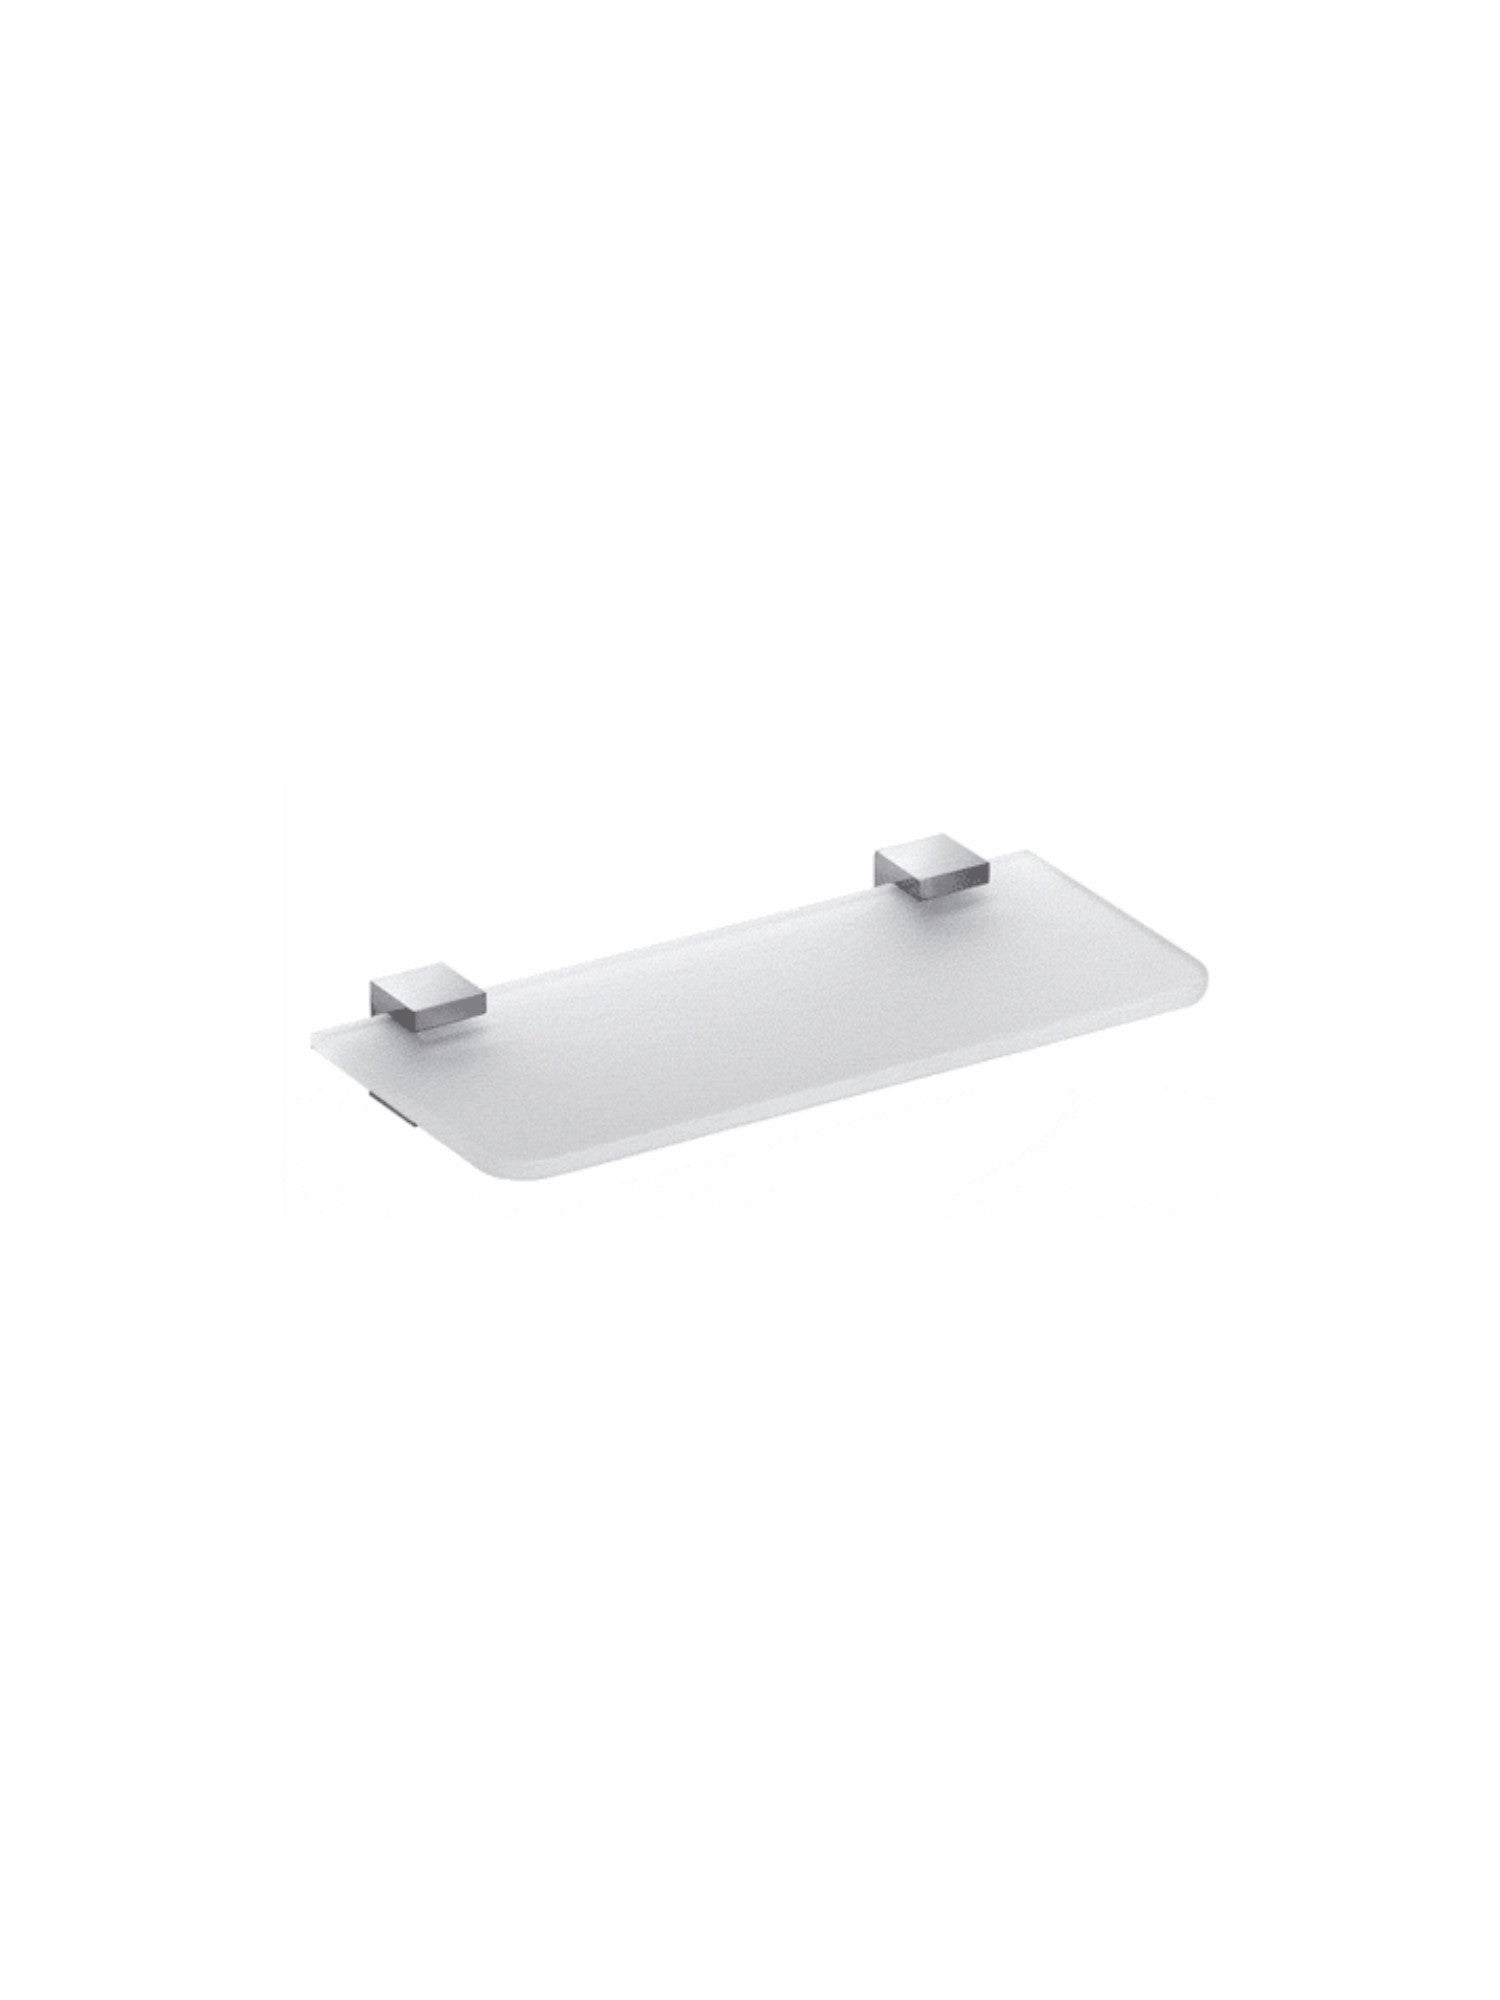 Flash Frosted Glass Shelf 30cm #L203X